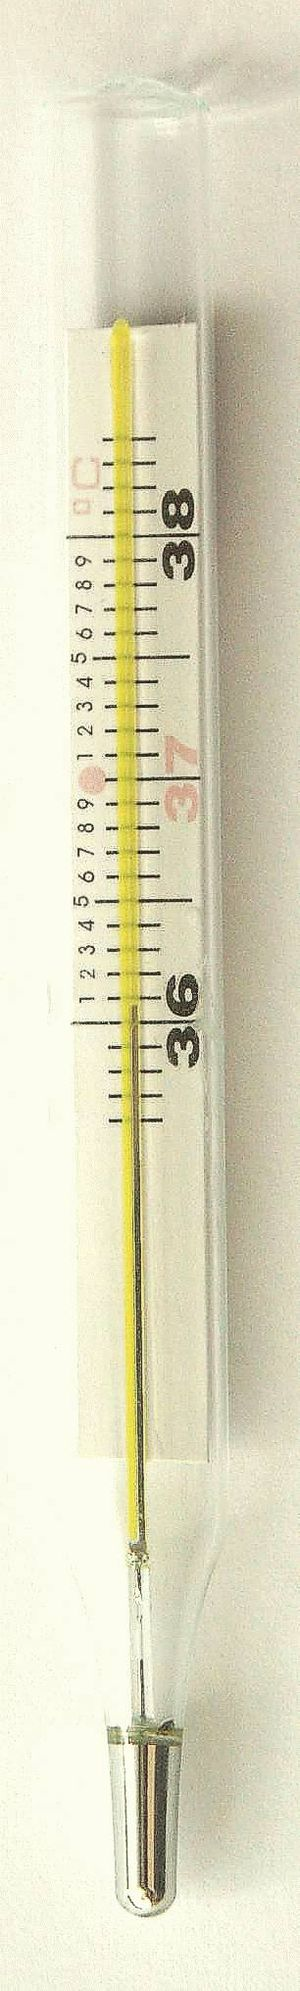 Ovulation type medical thermometer